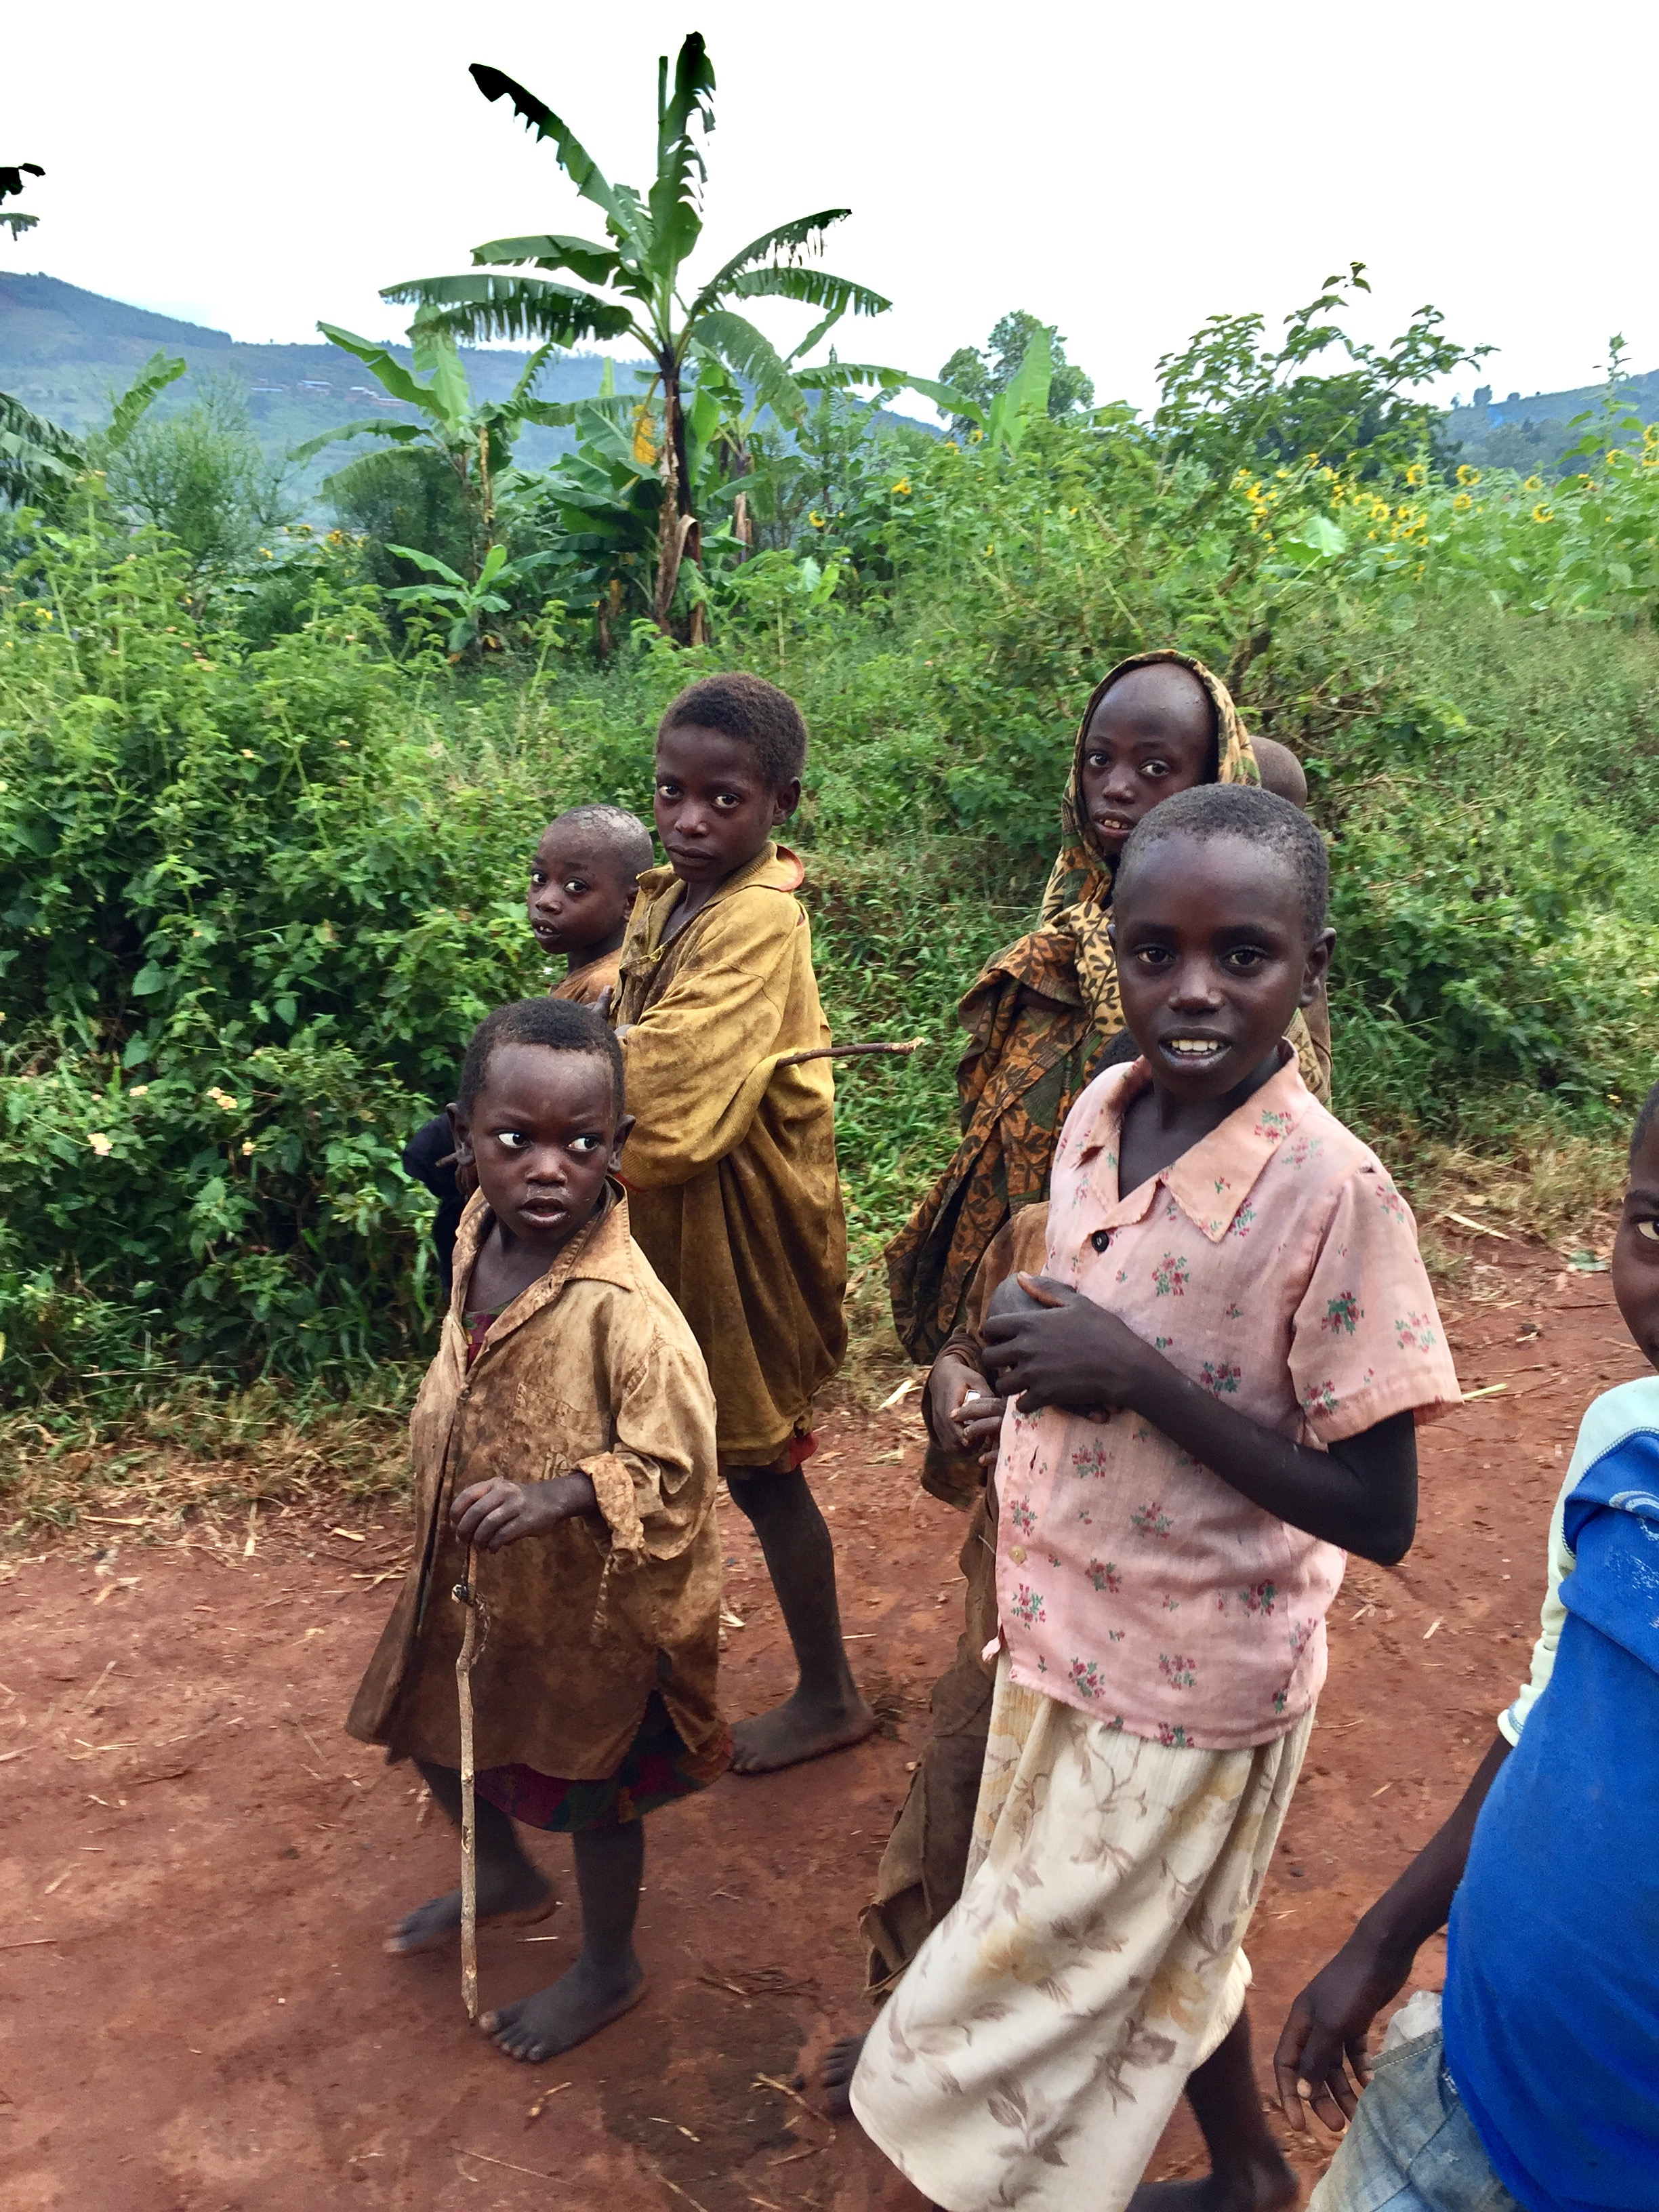 Children in Kirundo Africa - Burundi Travel Blog